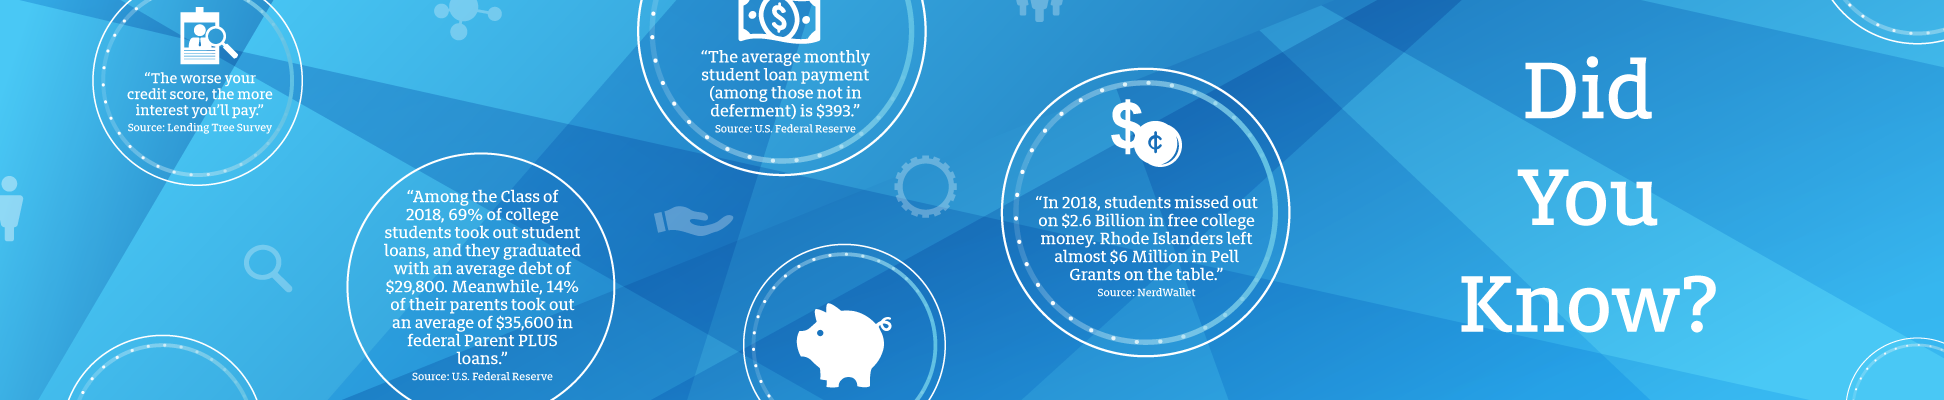 Facts About Paying for College